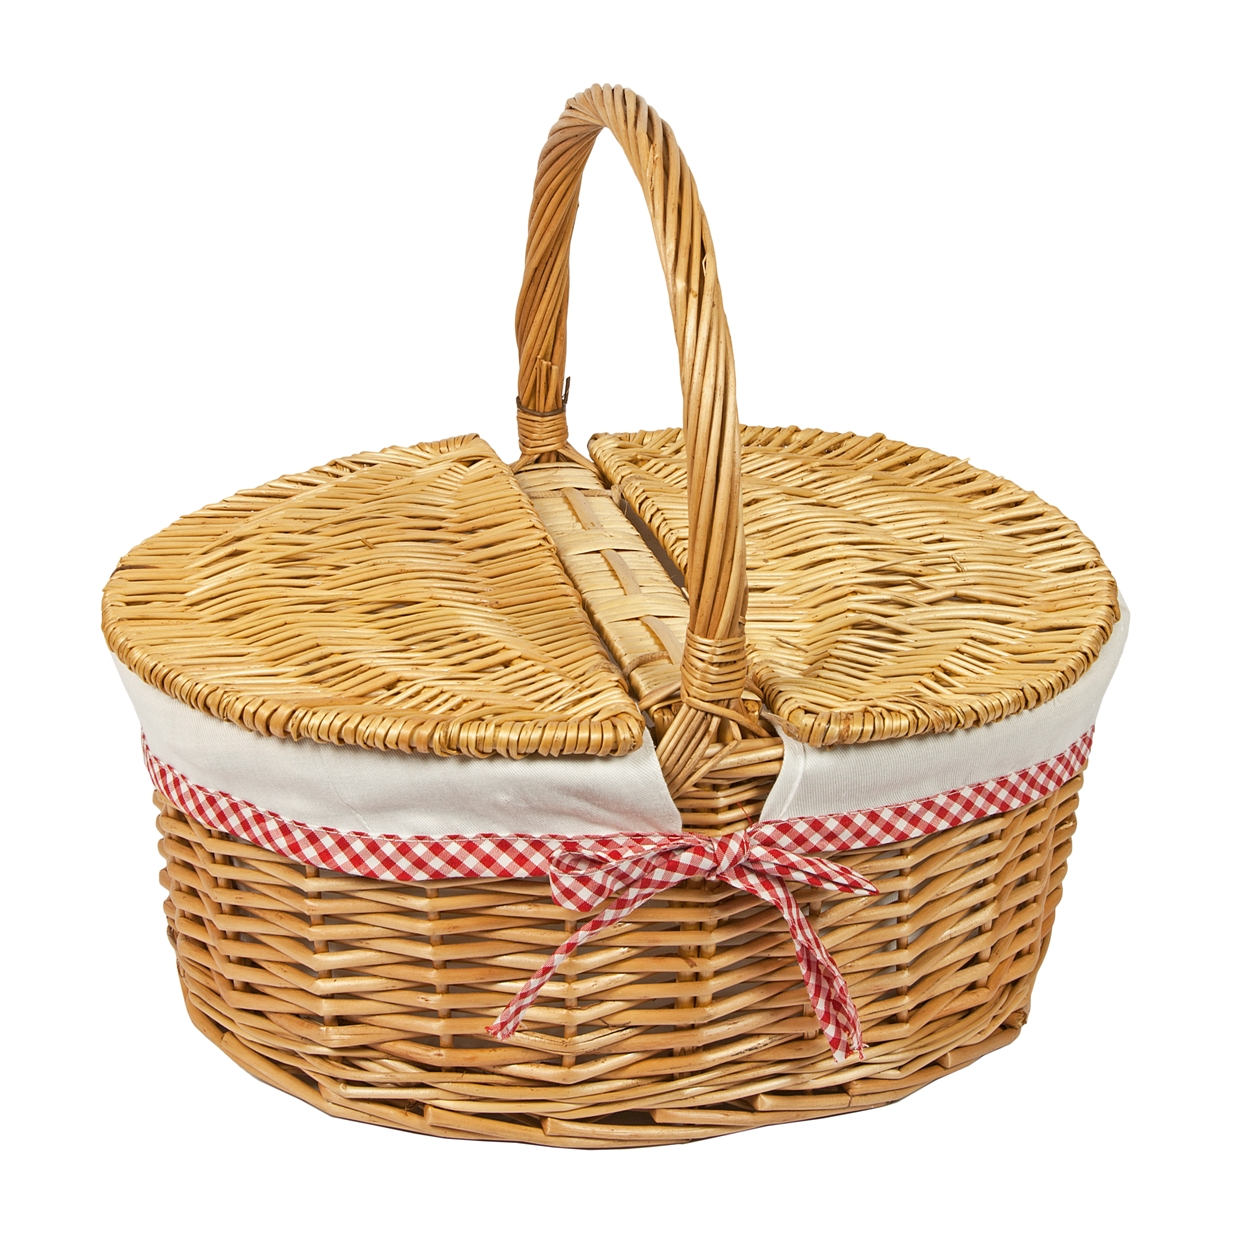 Woodluv Set of 2 Small Oval Wicker Basket with Carry Handles Natural